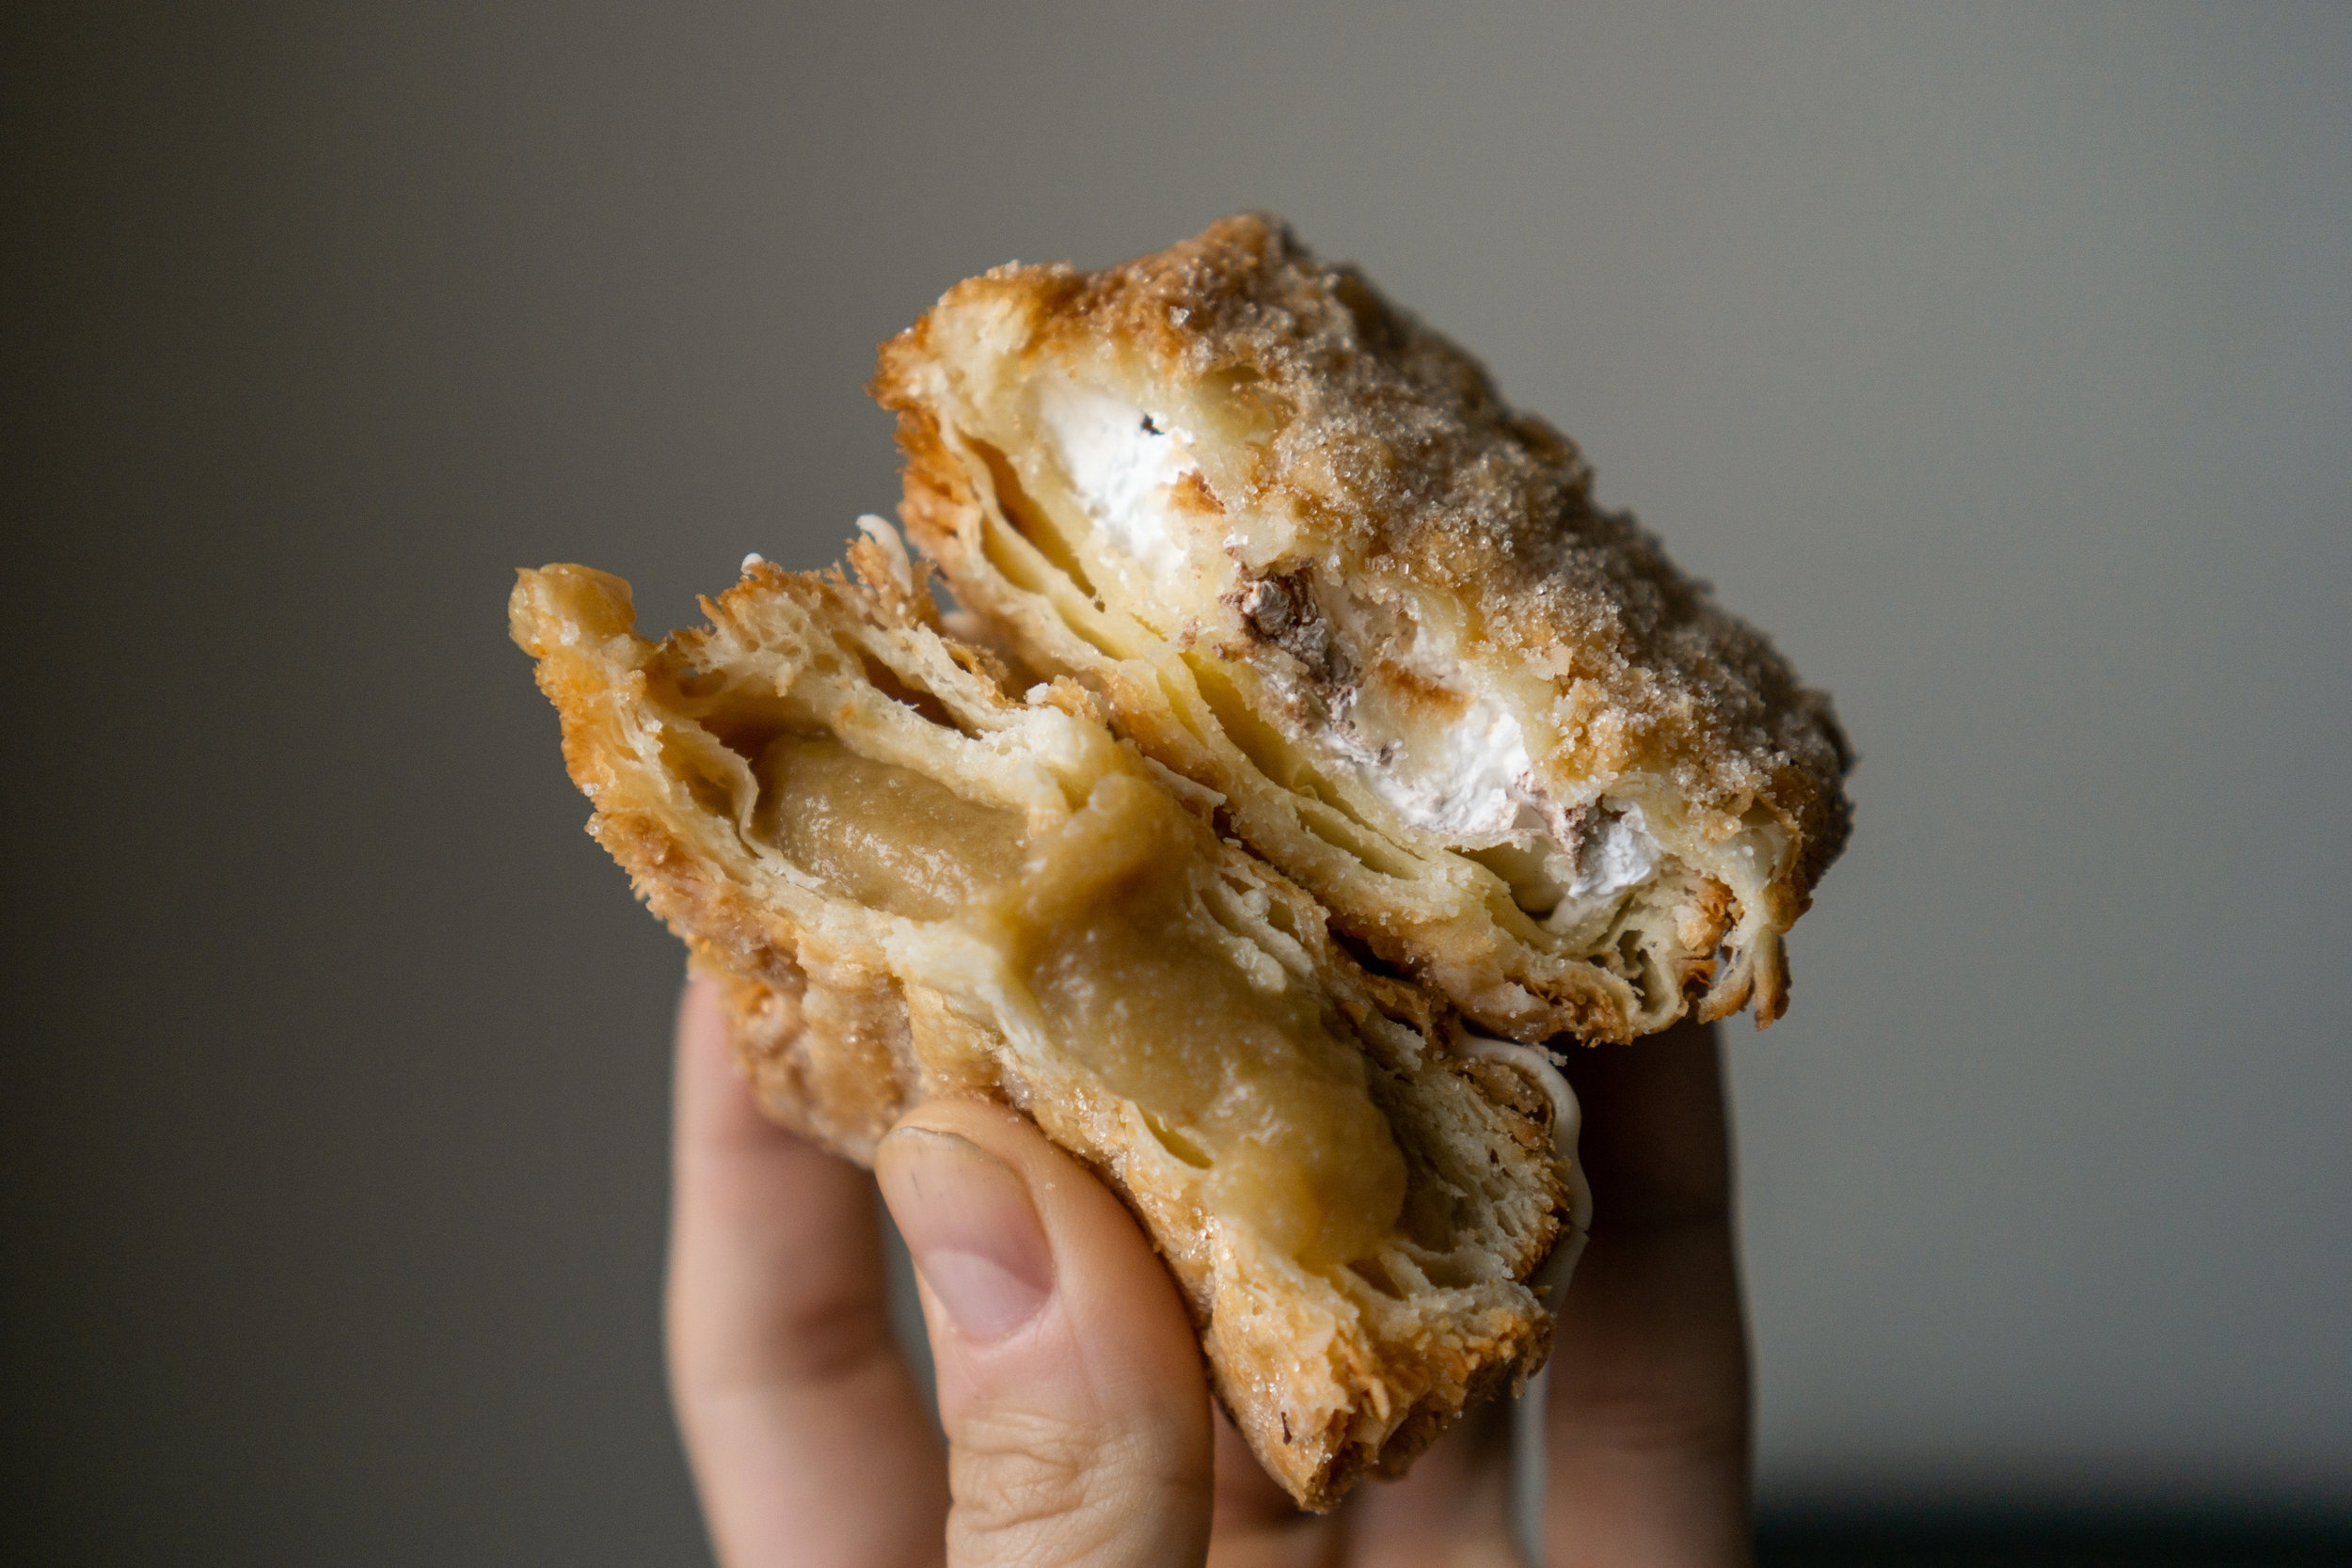 Apple pie filling made from scratch and a combination of marshmallow fluff and chocolate cream filled these crispy doughssants.